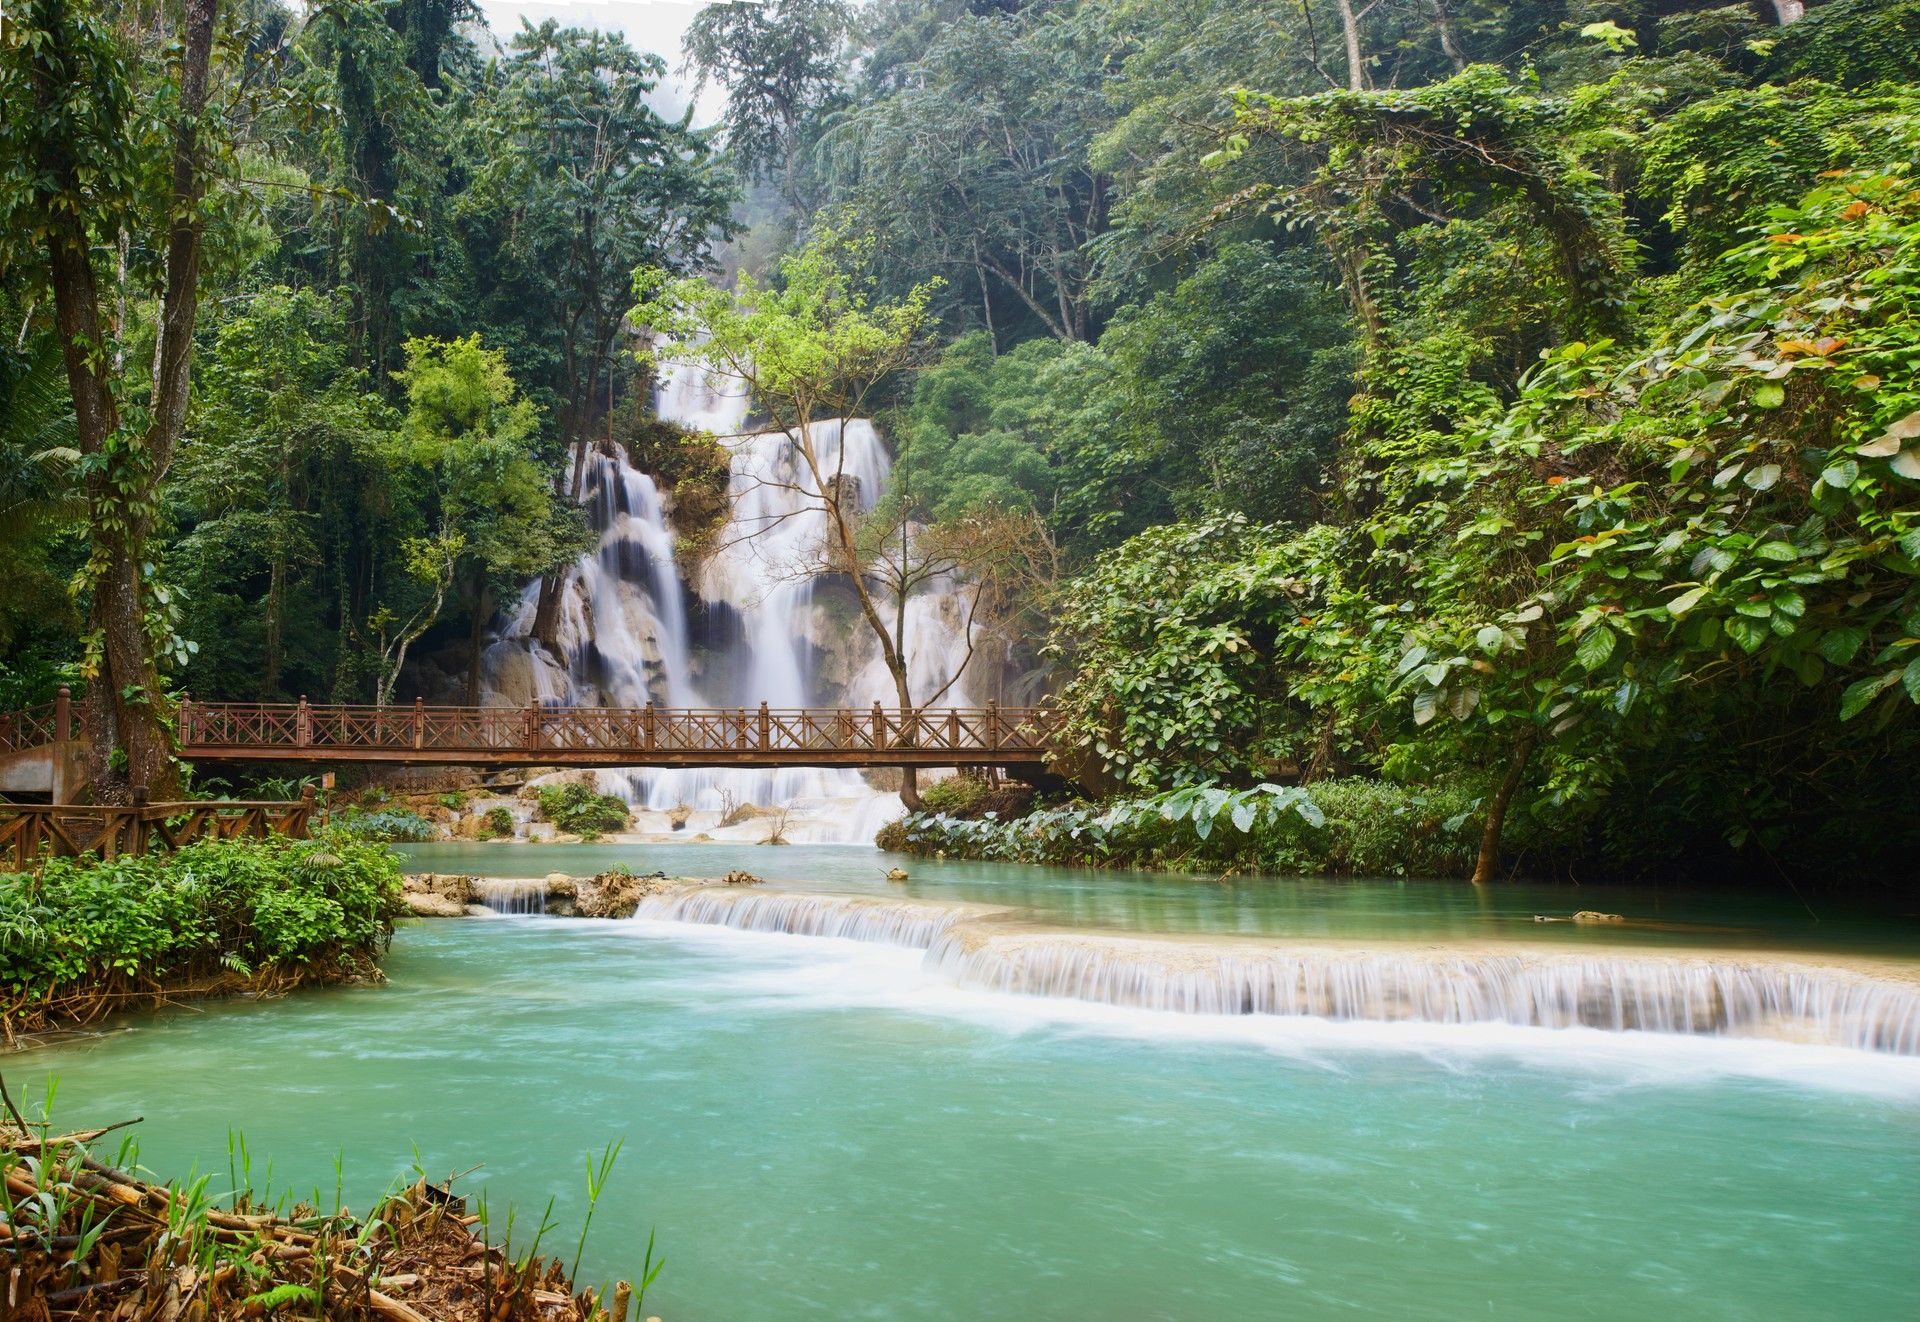 The best places to go wild swimming: Kuang Si Waterfall